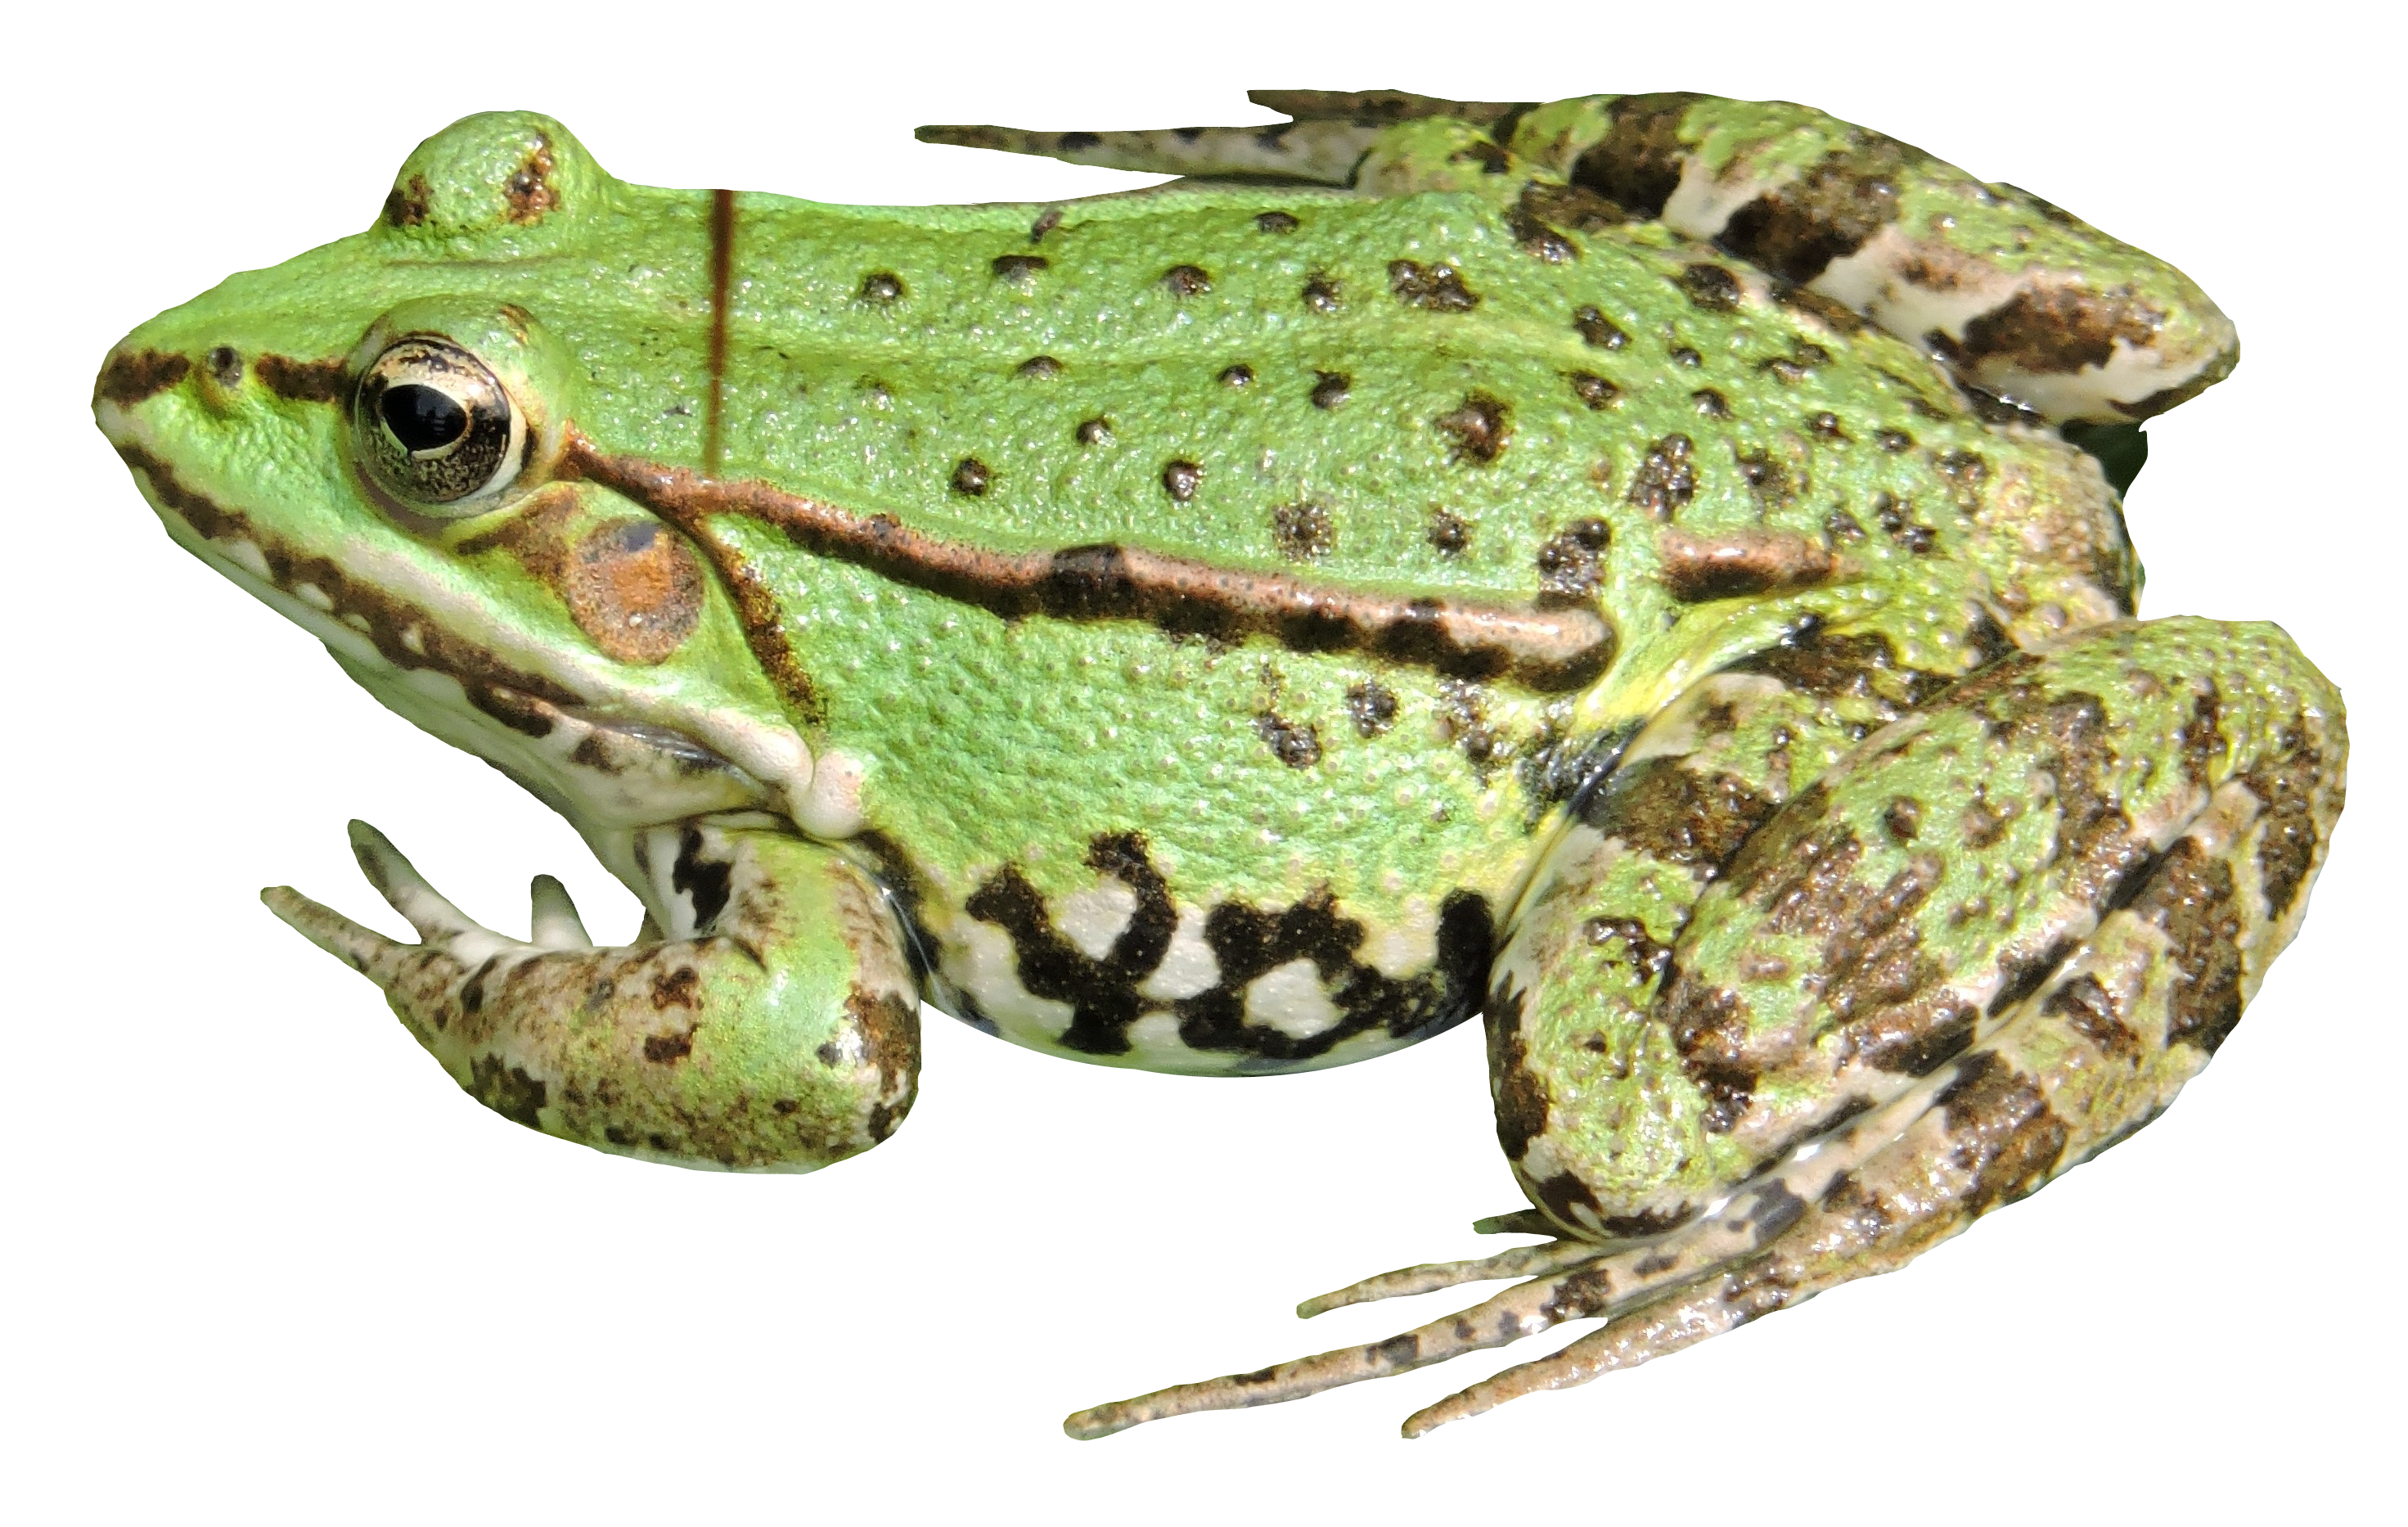 Frog PNG - Frog And Toad PNG